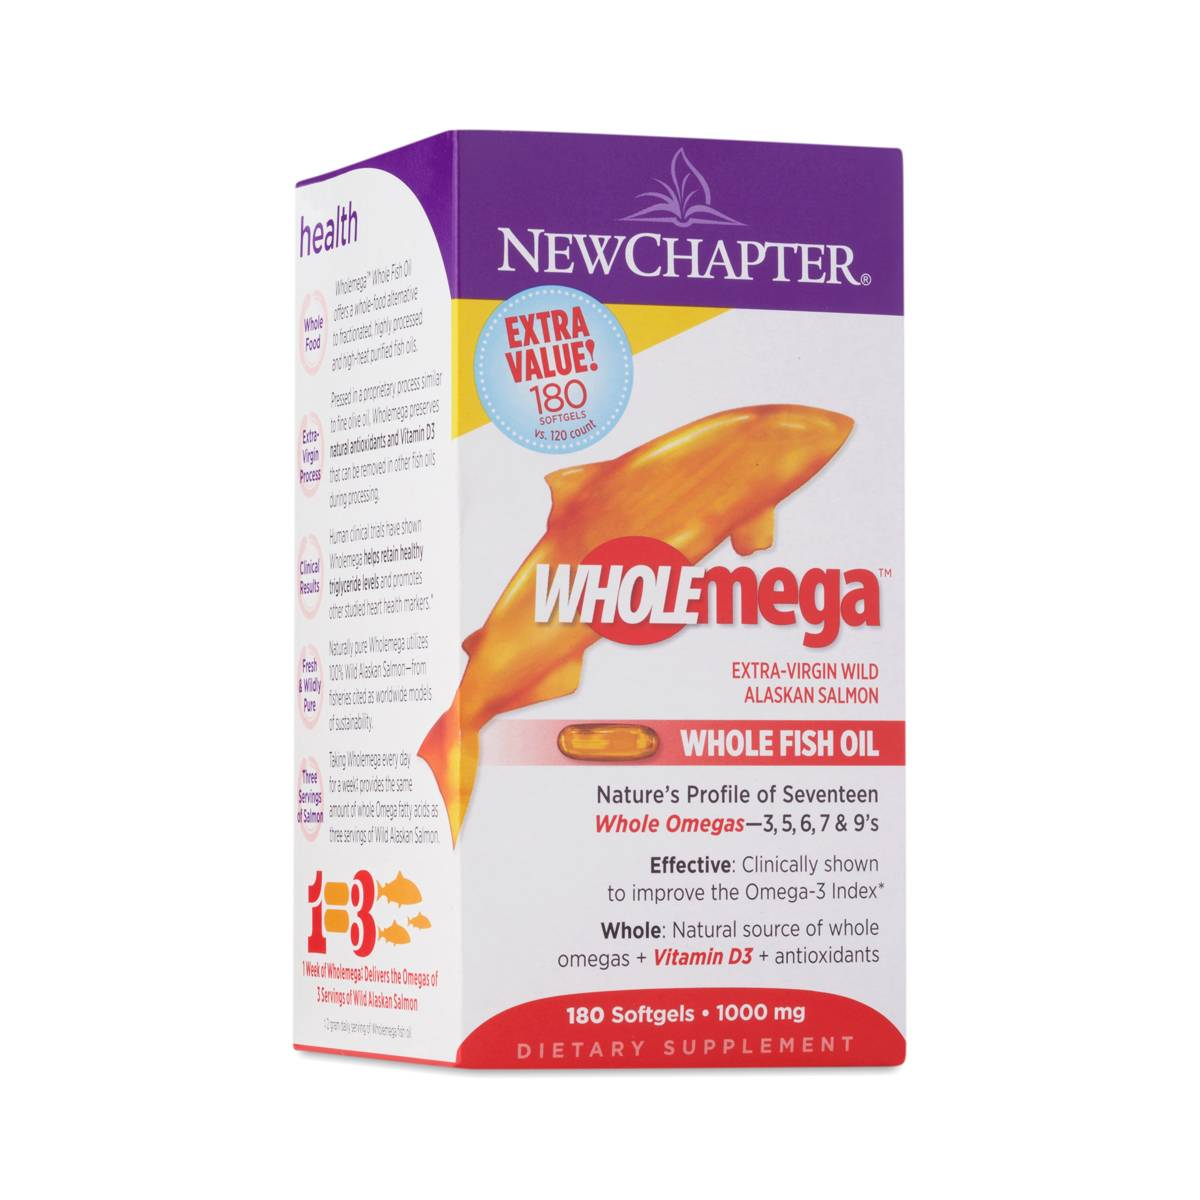 wholemega whole fish oil by new chapter thrive market